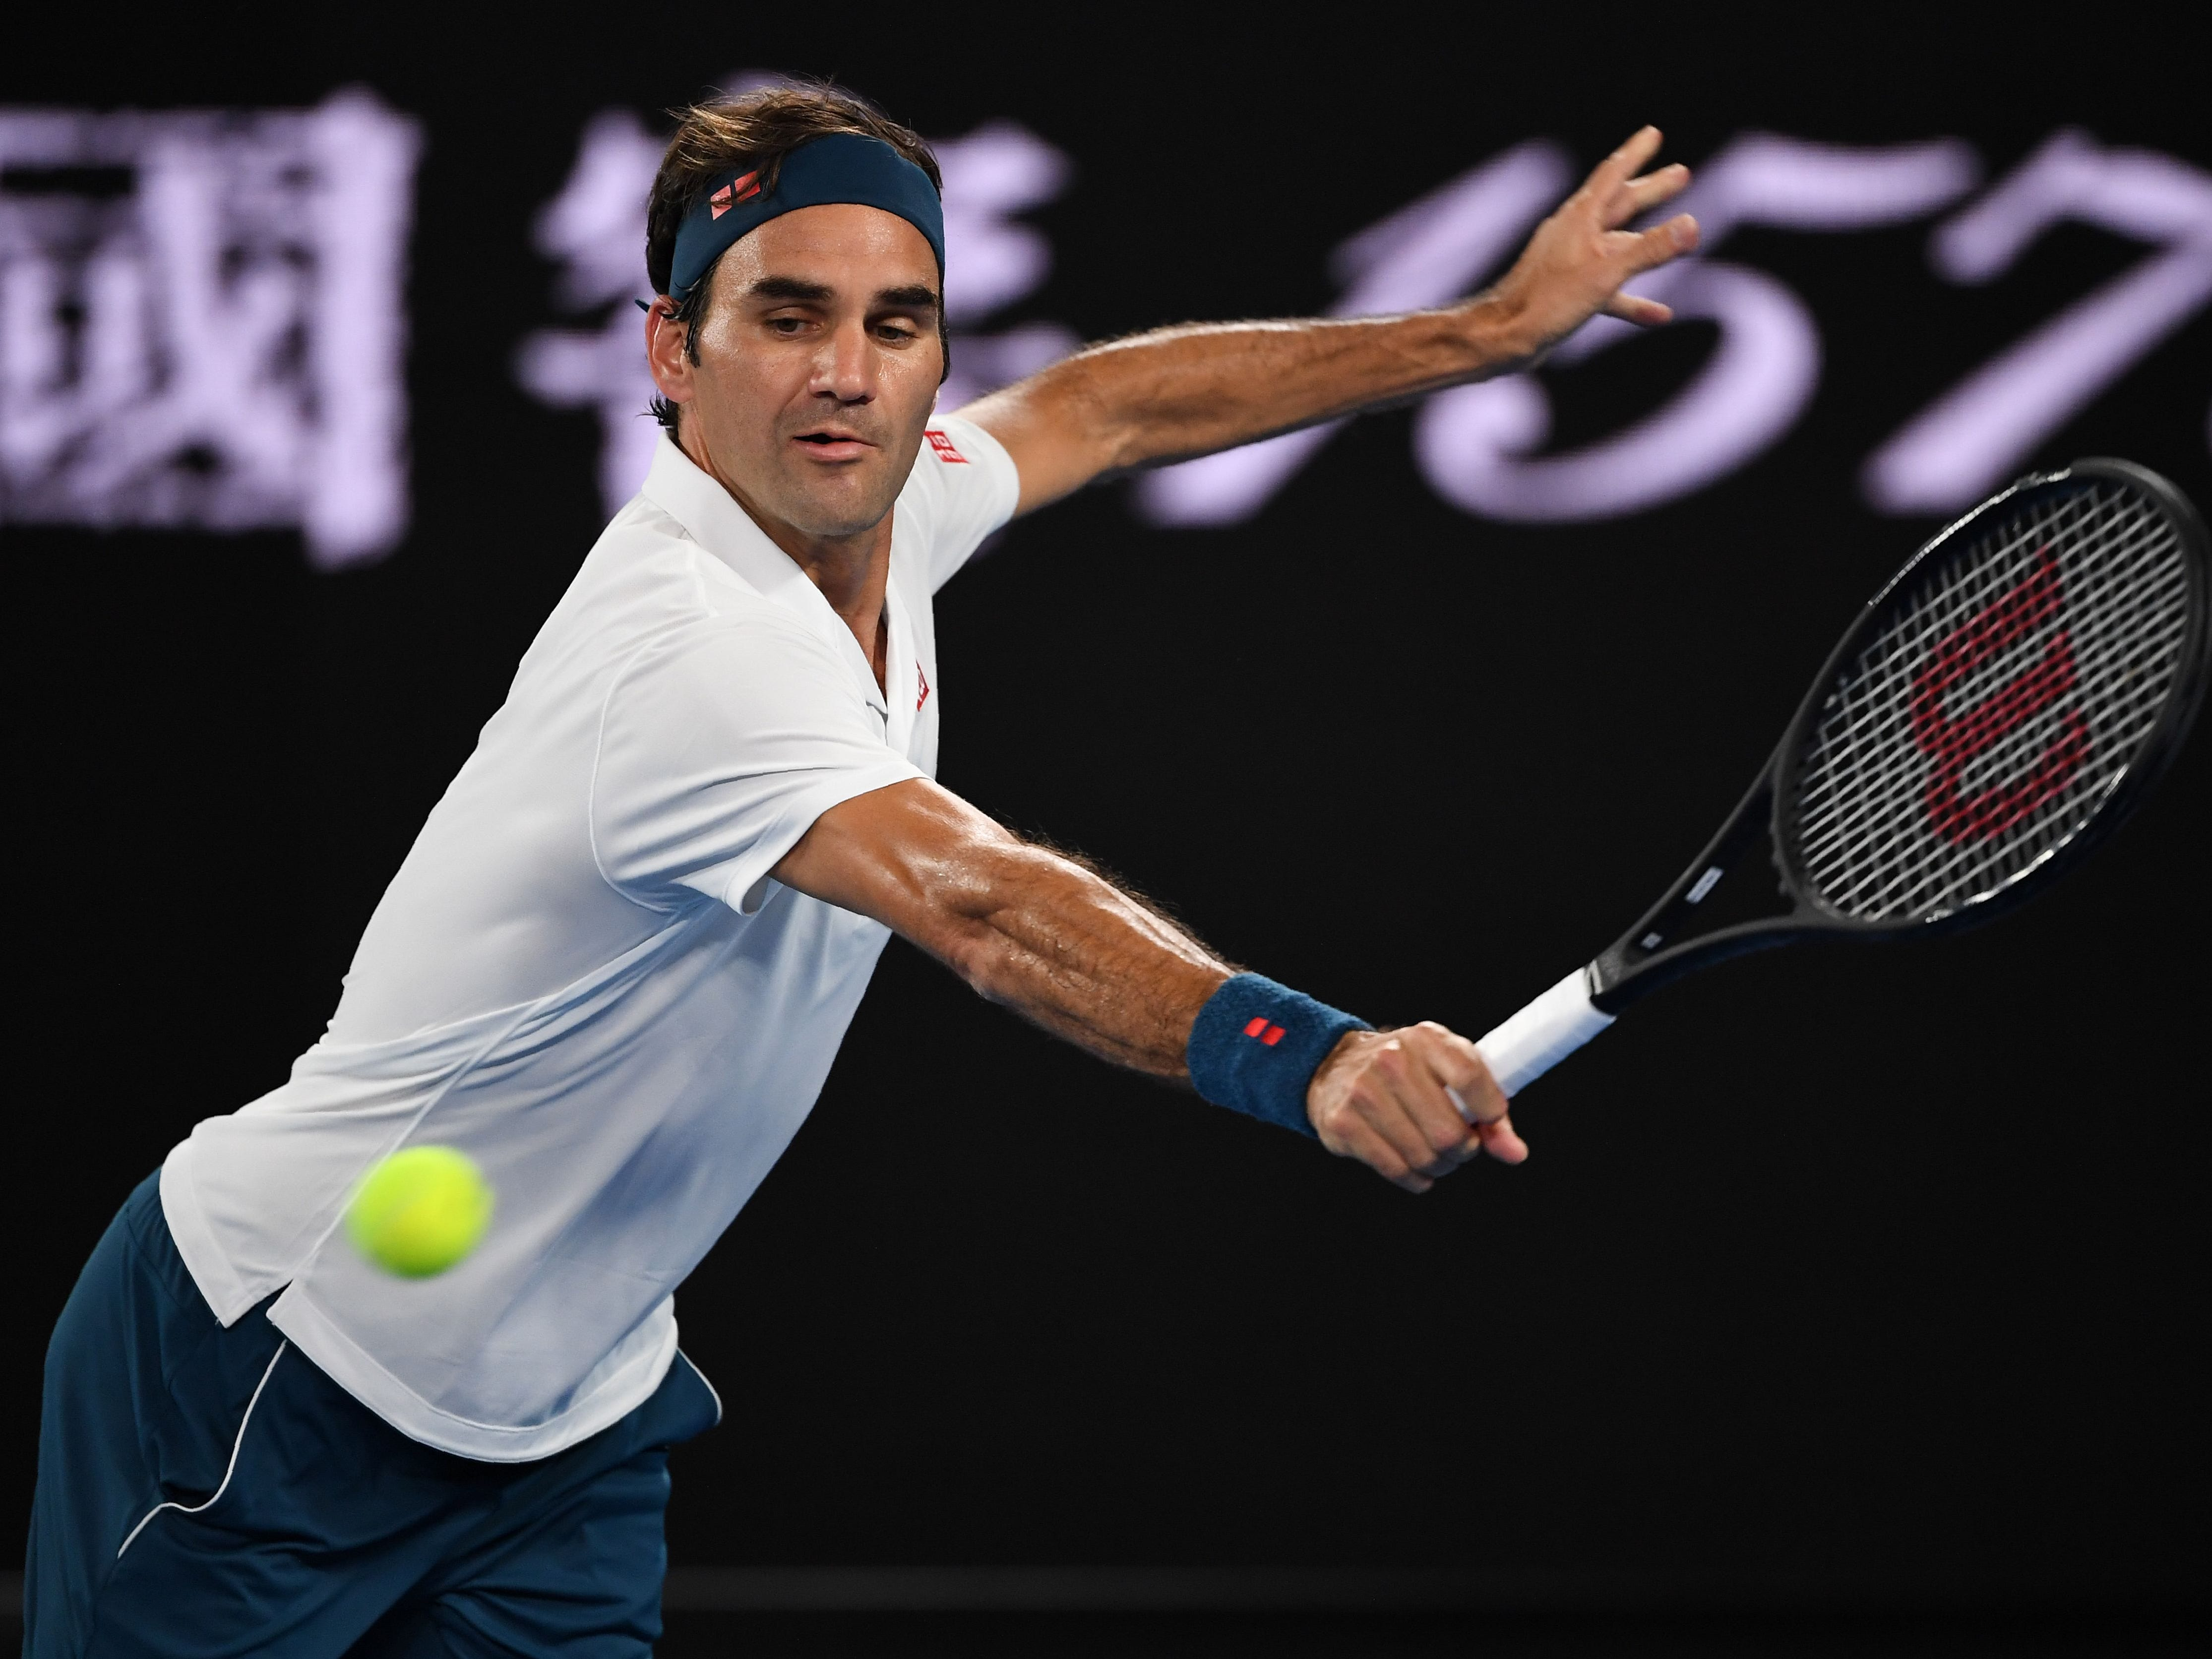 Third-seeded Roger Federer, playing a backhand return against American Taylor Fritz, reached the Round of 16 at a Grand Slam tournament for the 63rd time in his career.